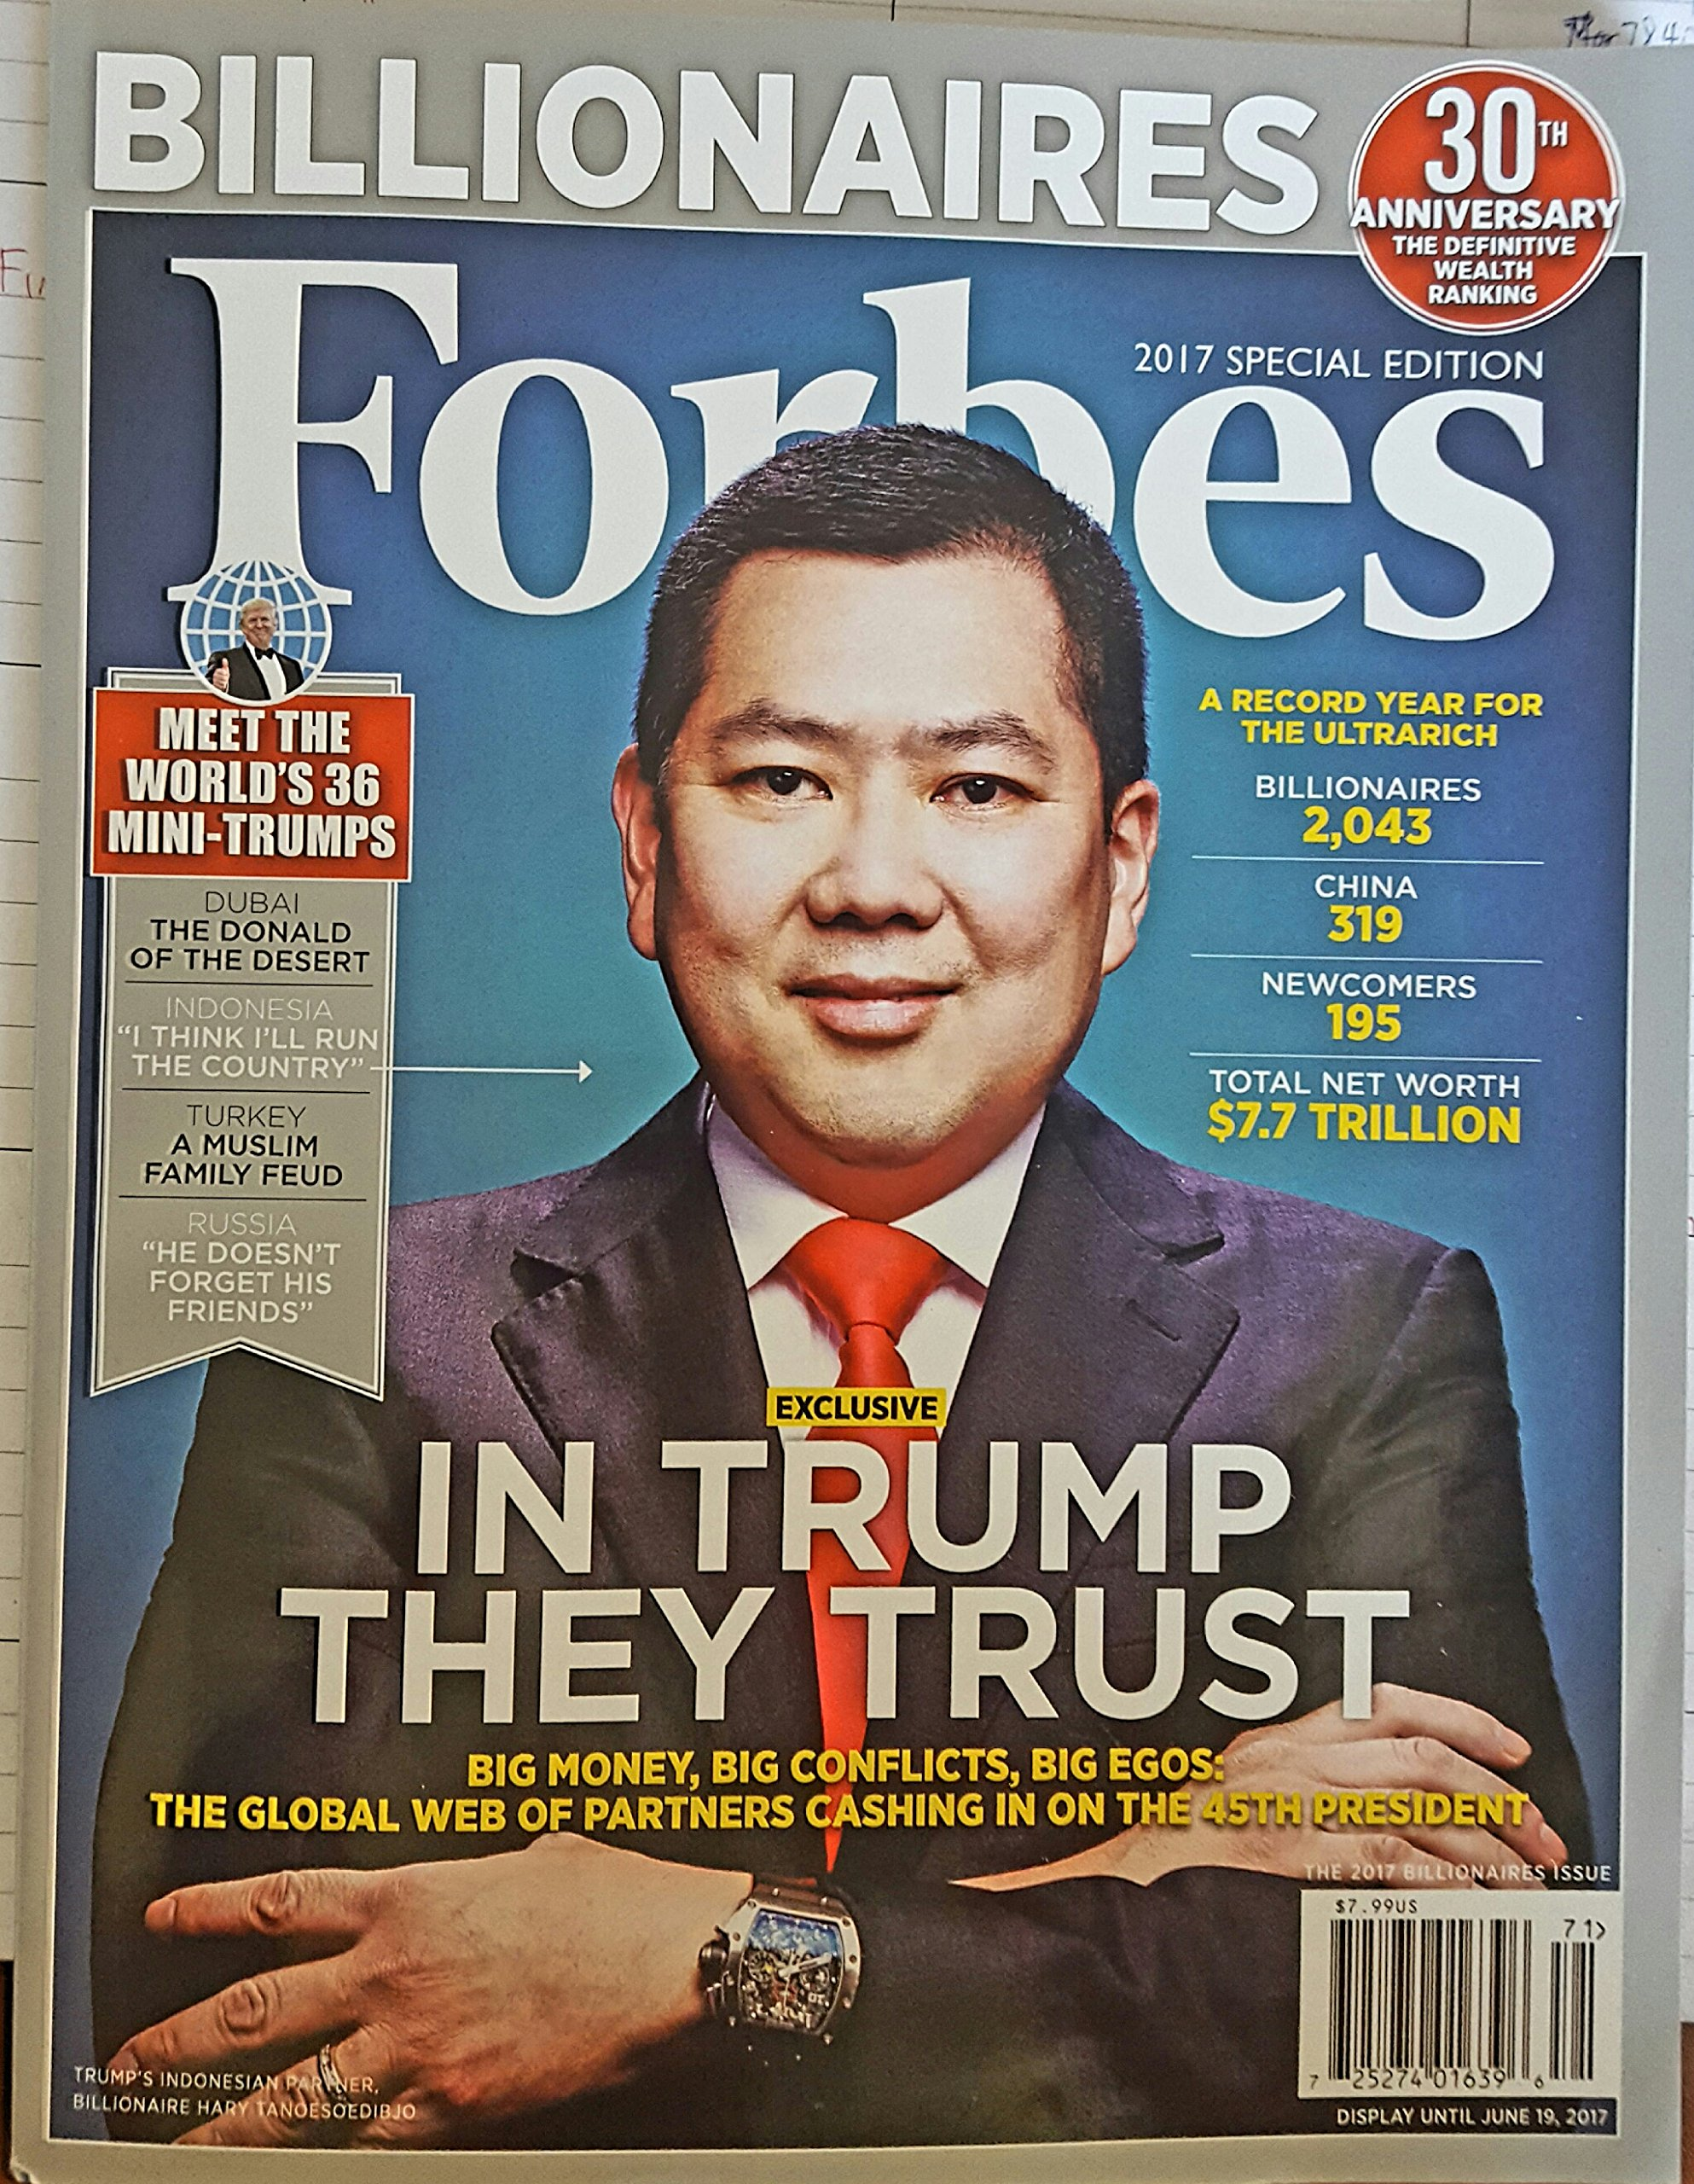 Download FORBES MAGAZINE 2017 30TH ANNIVERSARY RICHES BILLIONAIRES ISSUE SPECIAL EDITION - MEET THE WORLD'S MINI-TRUMPS, 2017 WEALTH RANKING, A RECORD YEAR FOR THE ULTRARICH PDF